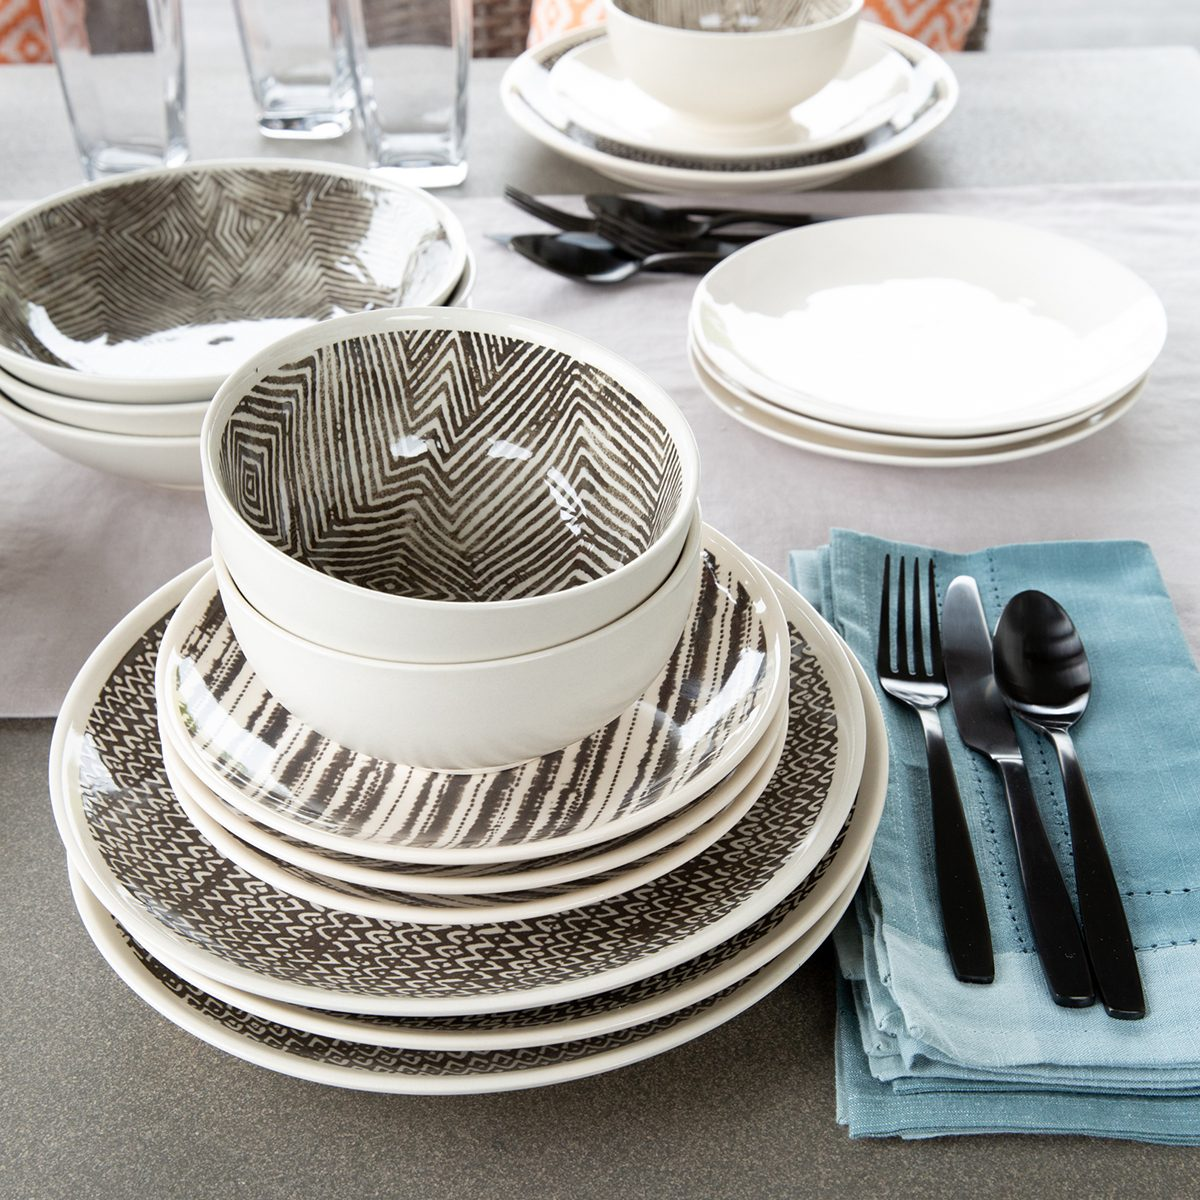 Outdoor tabletop items including plates, bowls, flatware and napkins